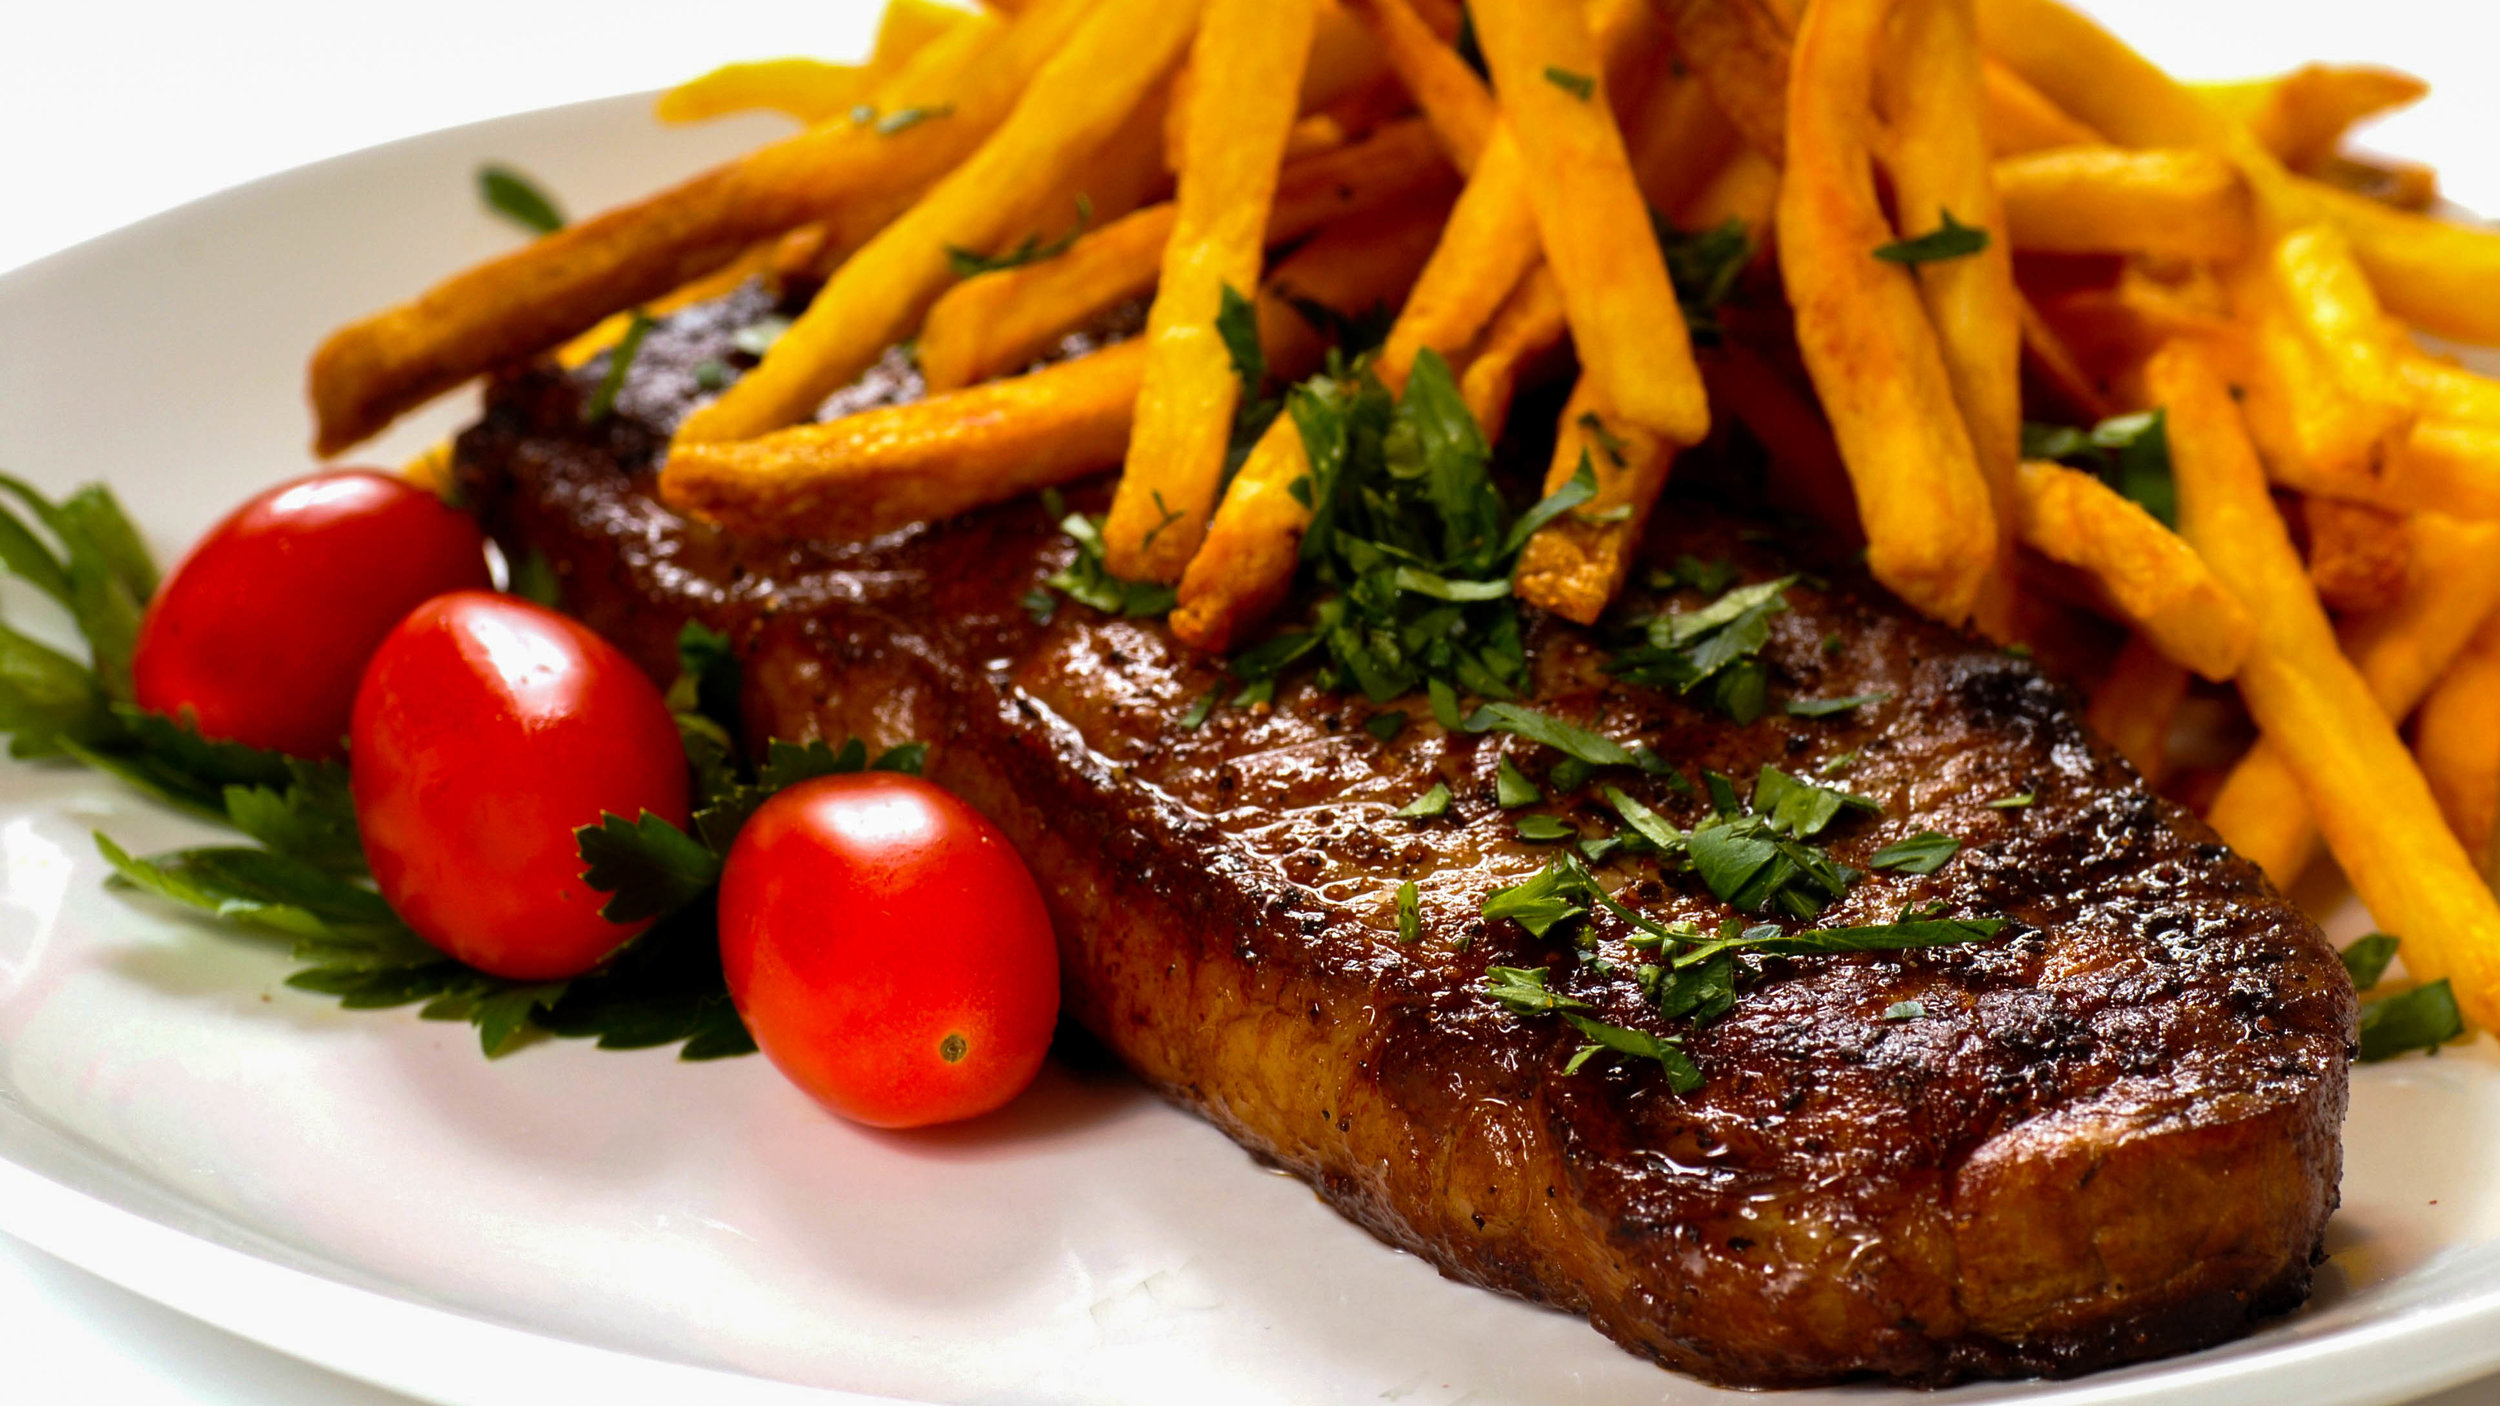 steak-2-alr-c169-169.jpg